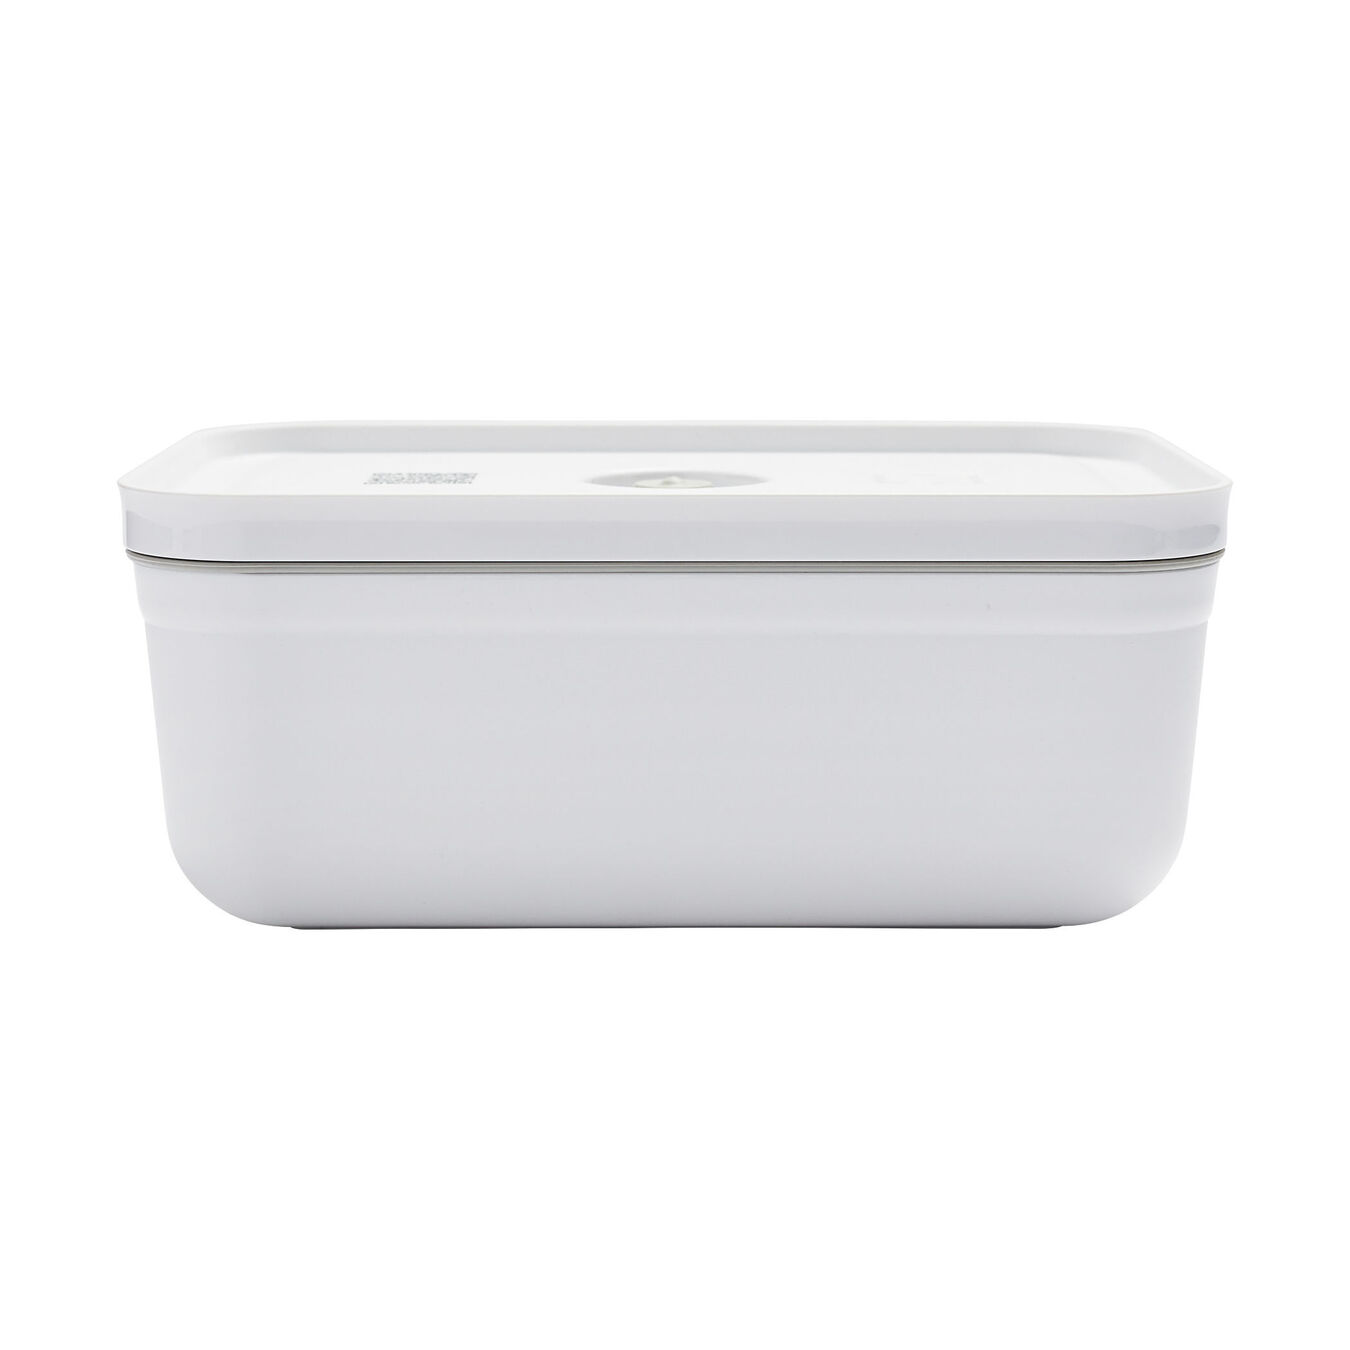 large Vacuum lunch box, plastic, white,,large 3